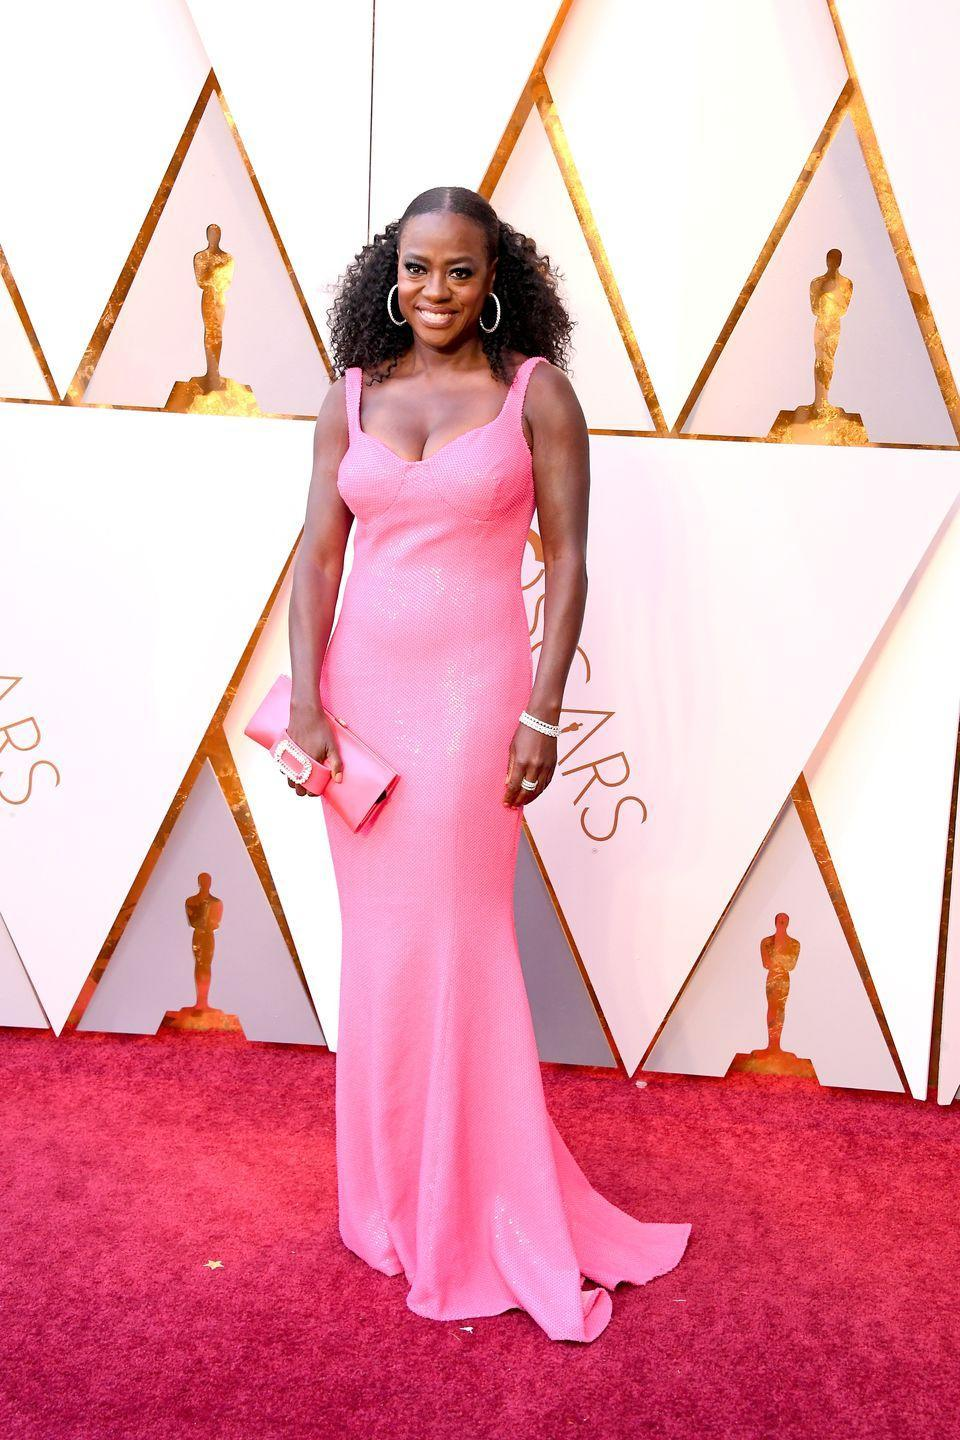 <p>Viola donned a bright pink sequin Michael Kors gown and accessorized with a matching clutch and sparkly hoop earrings in 2018. She won the Best Supporting Actress Oscar the previous year for her emotional performance in <em>Fences</em>, and presented the award for Best Supporting Actor to Sam Rockwell this year. </p>